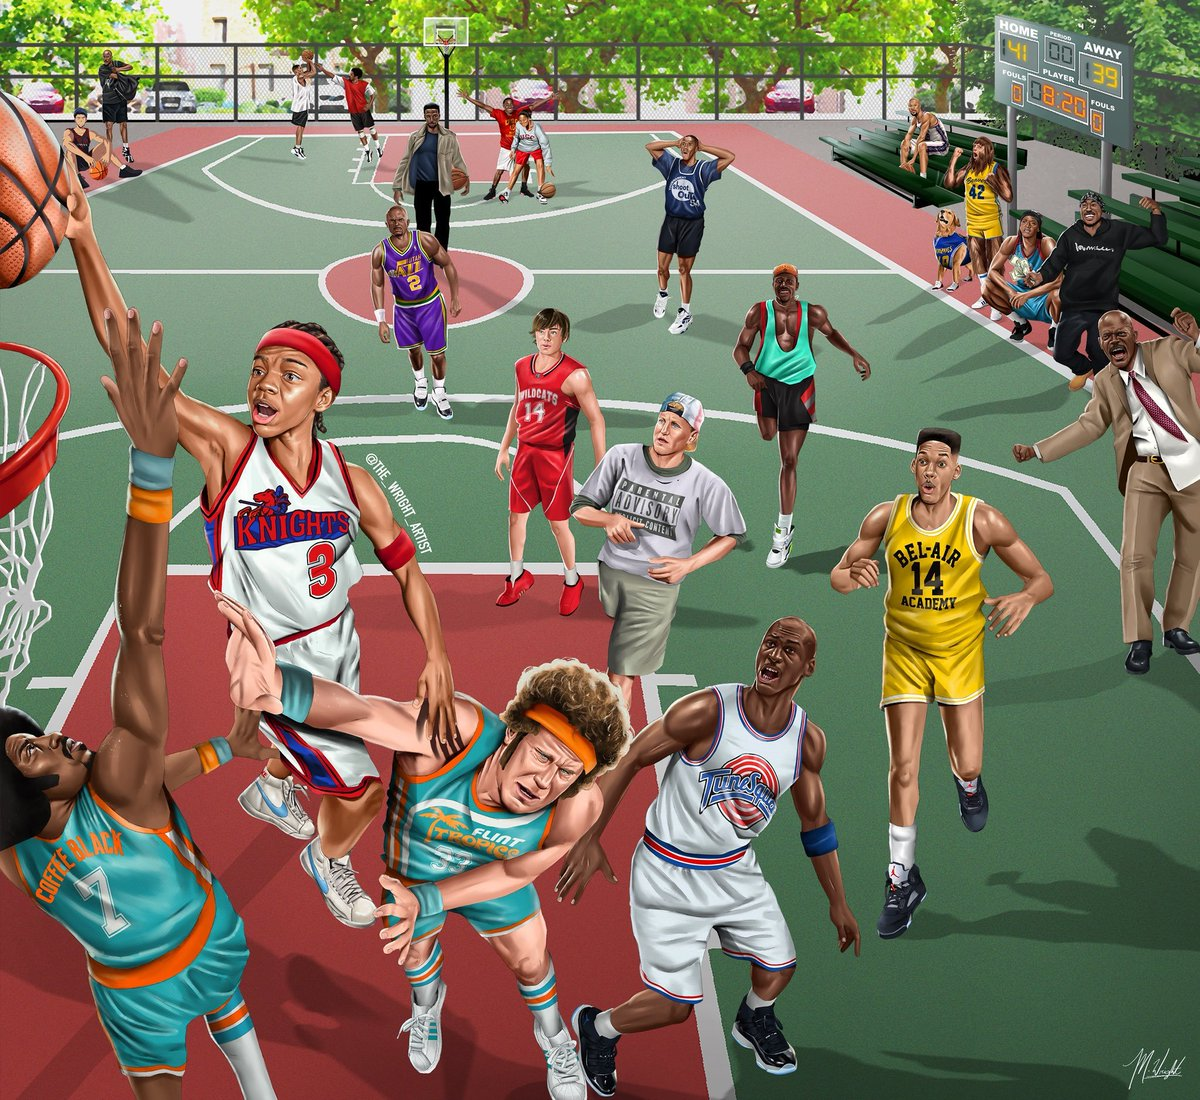 Ballislife Com On Twitter The Blacktop Basketball Legends In Film Amazing Artwork By Malachi Wright Thewrightar